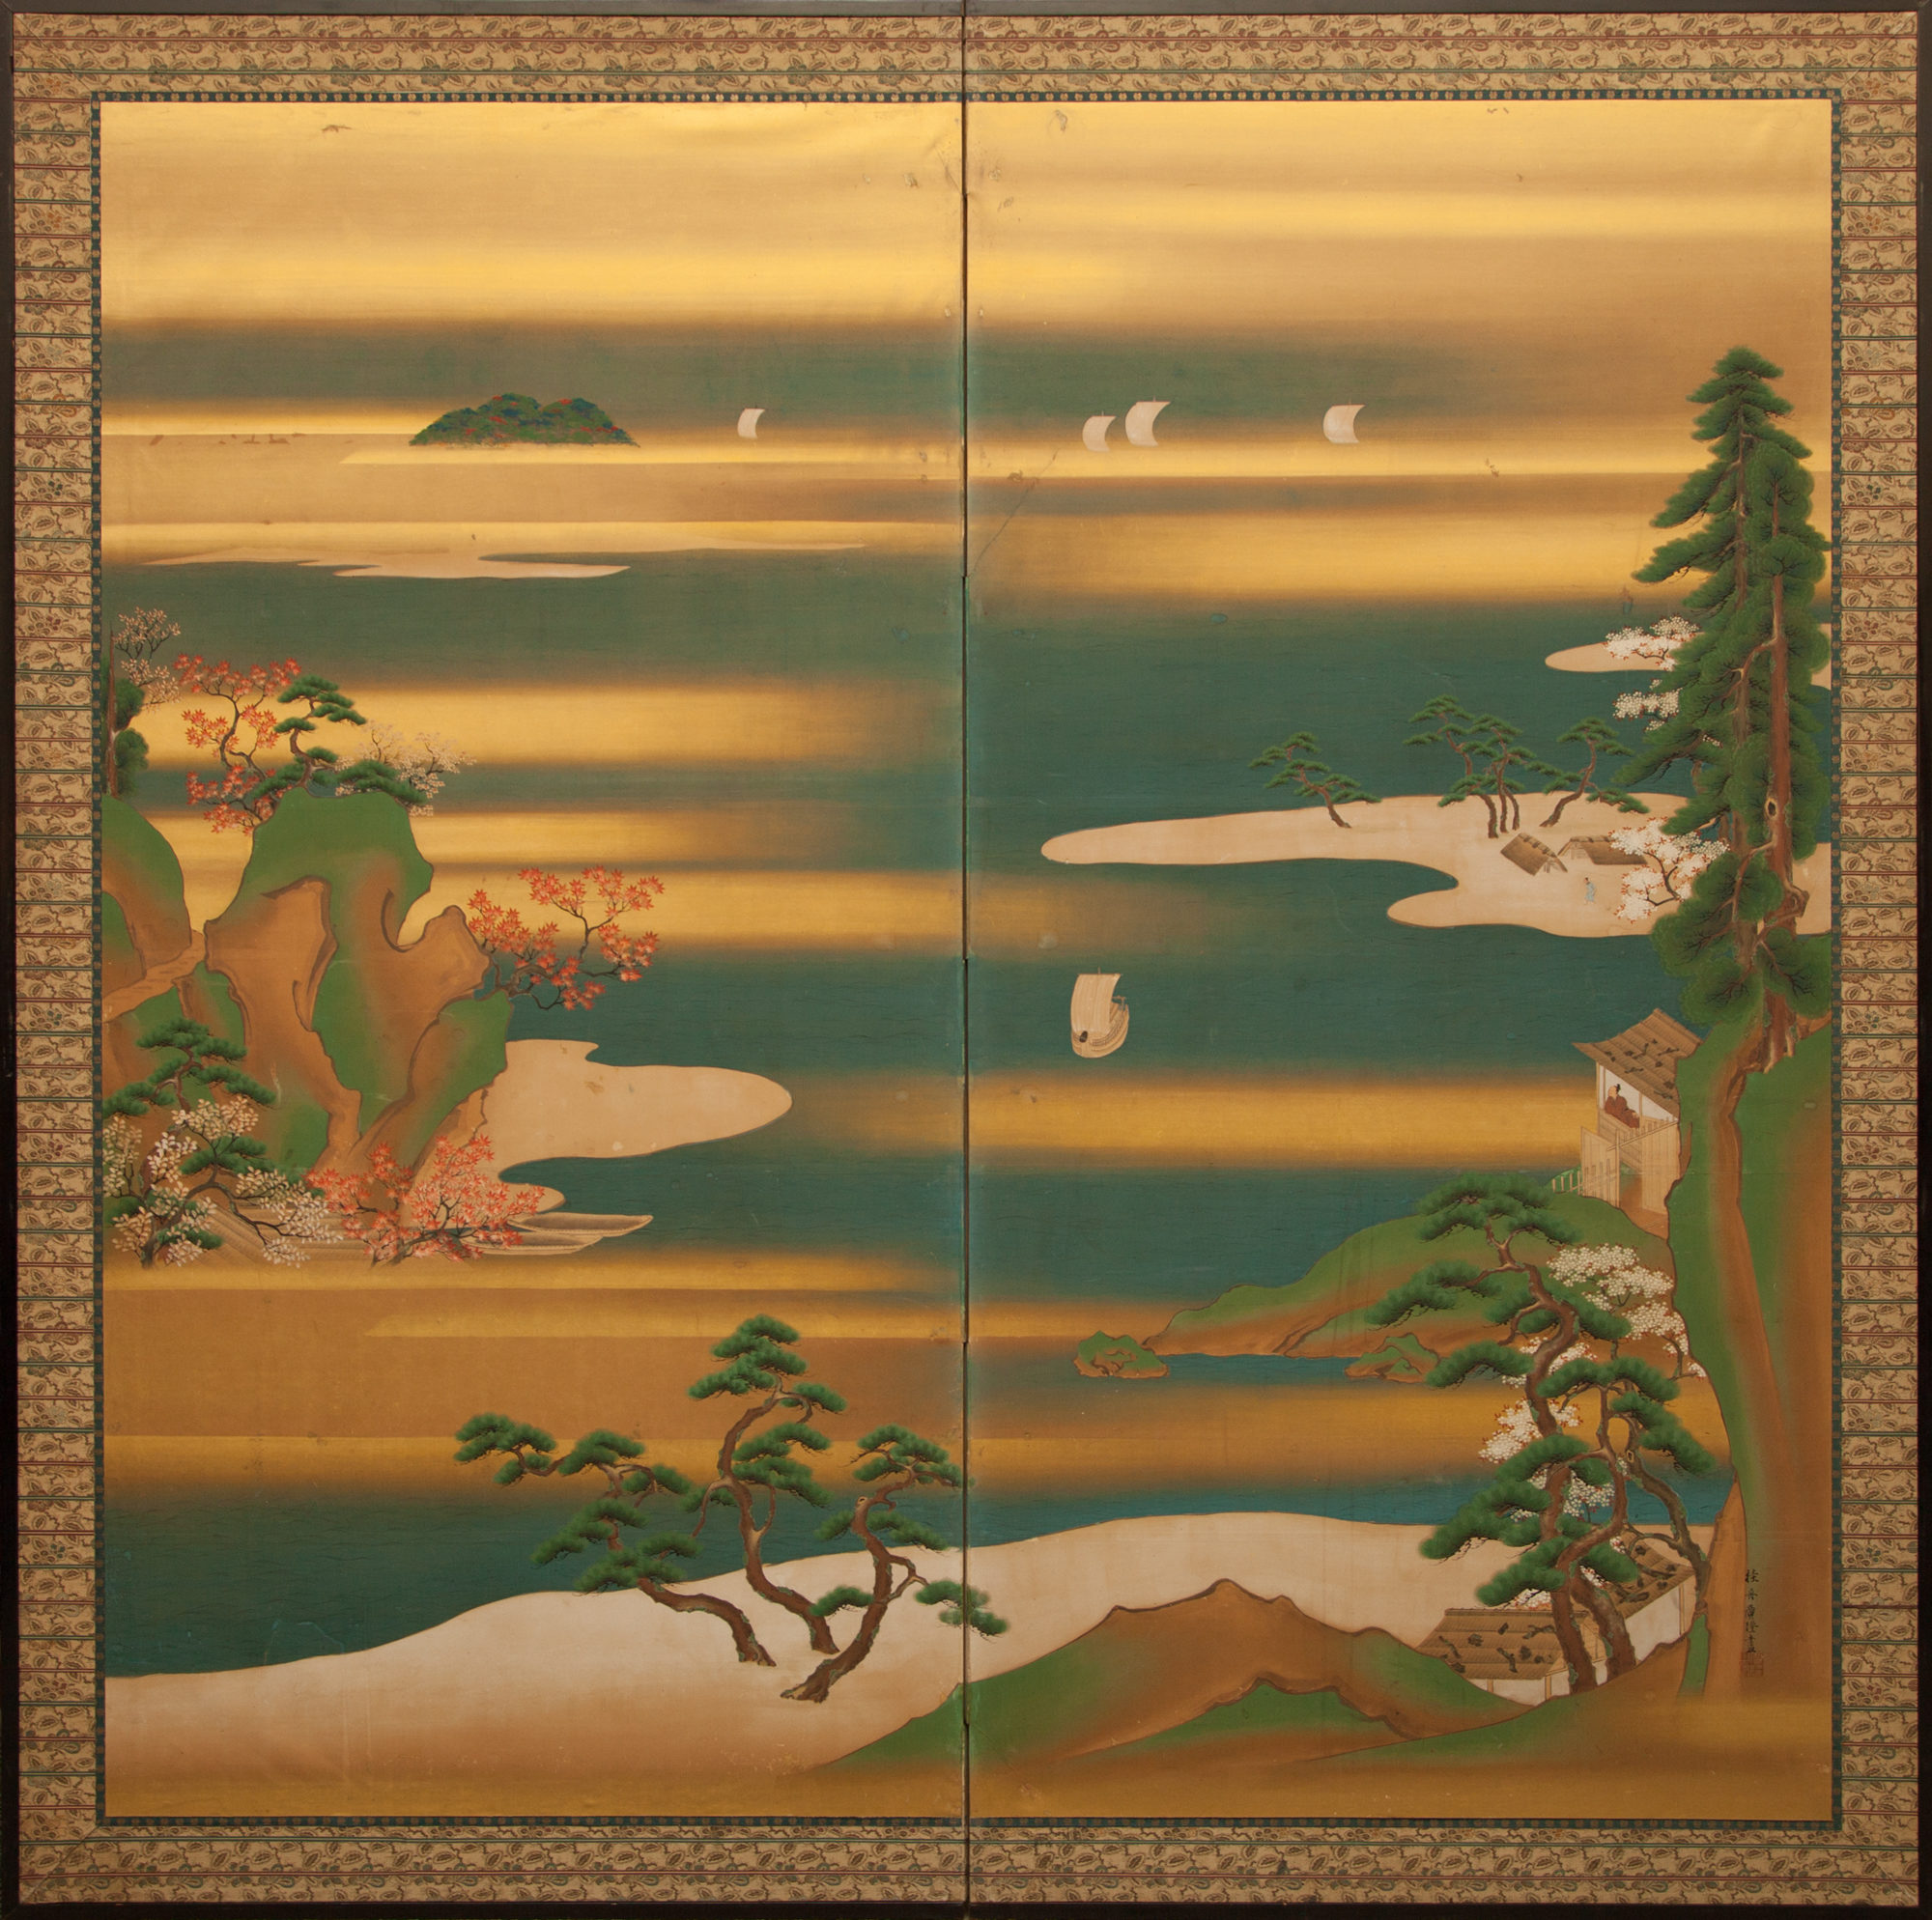 Japanese Two Panel Screen: Seascape with Trees and Sailing Ships